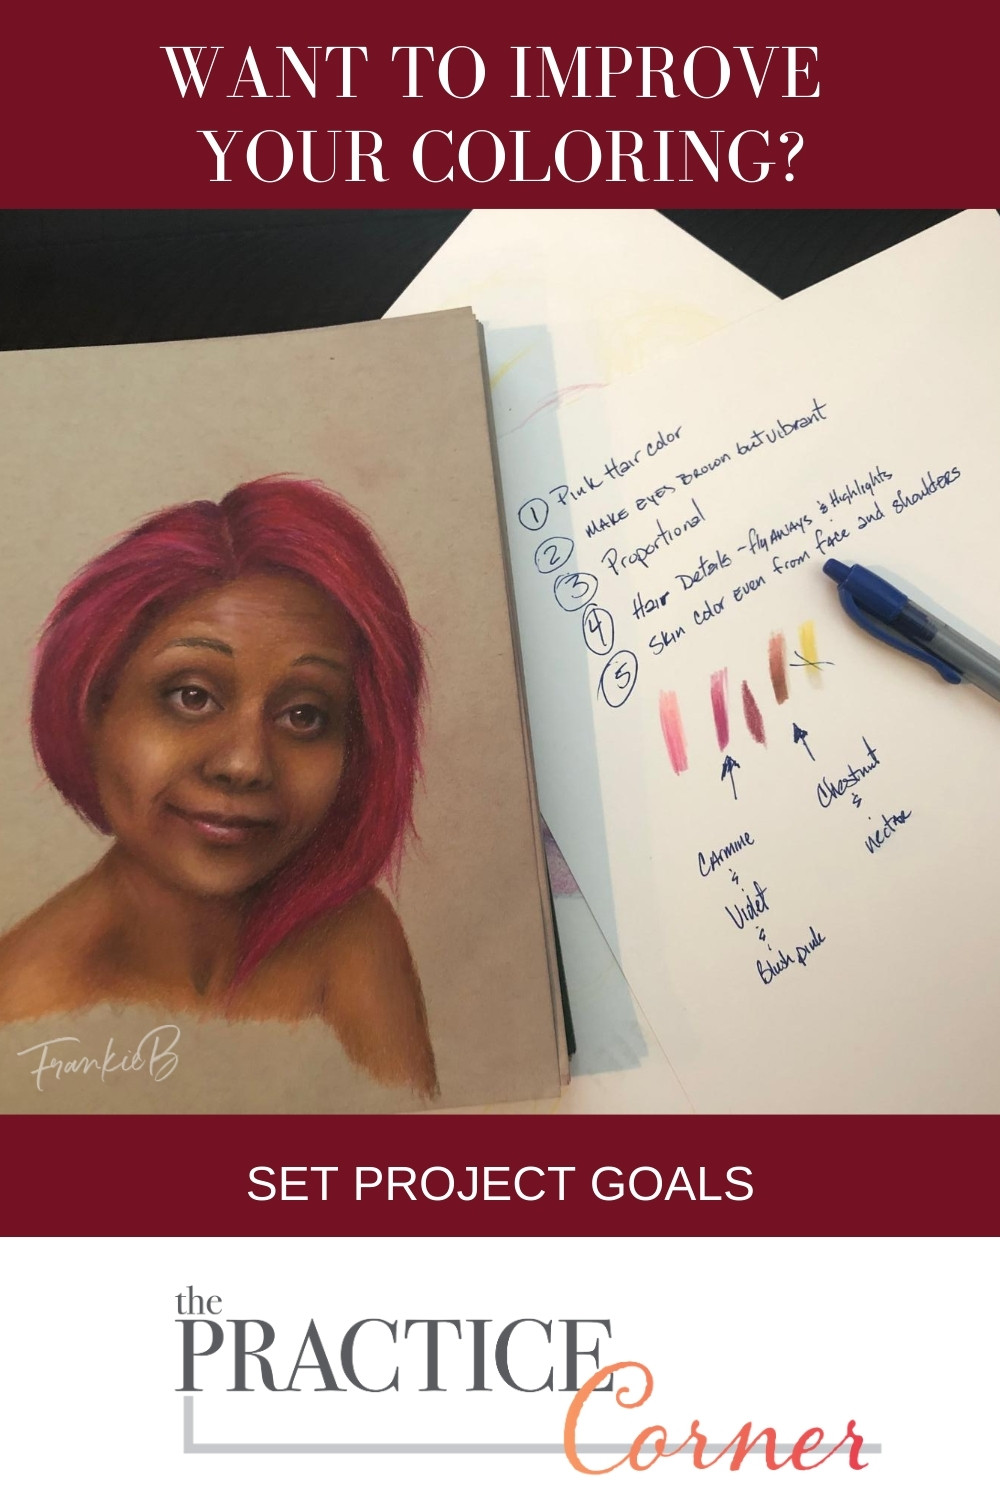 Set project goals | How to improve your coloring | #coloringtips #realisticcoloring